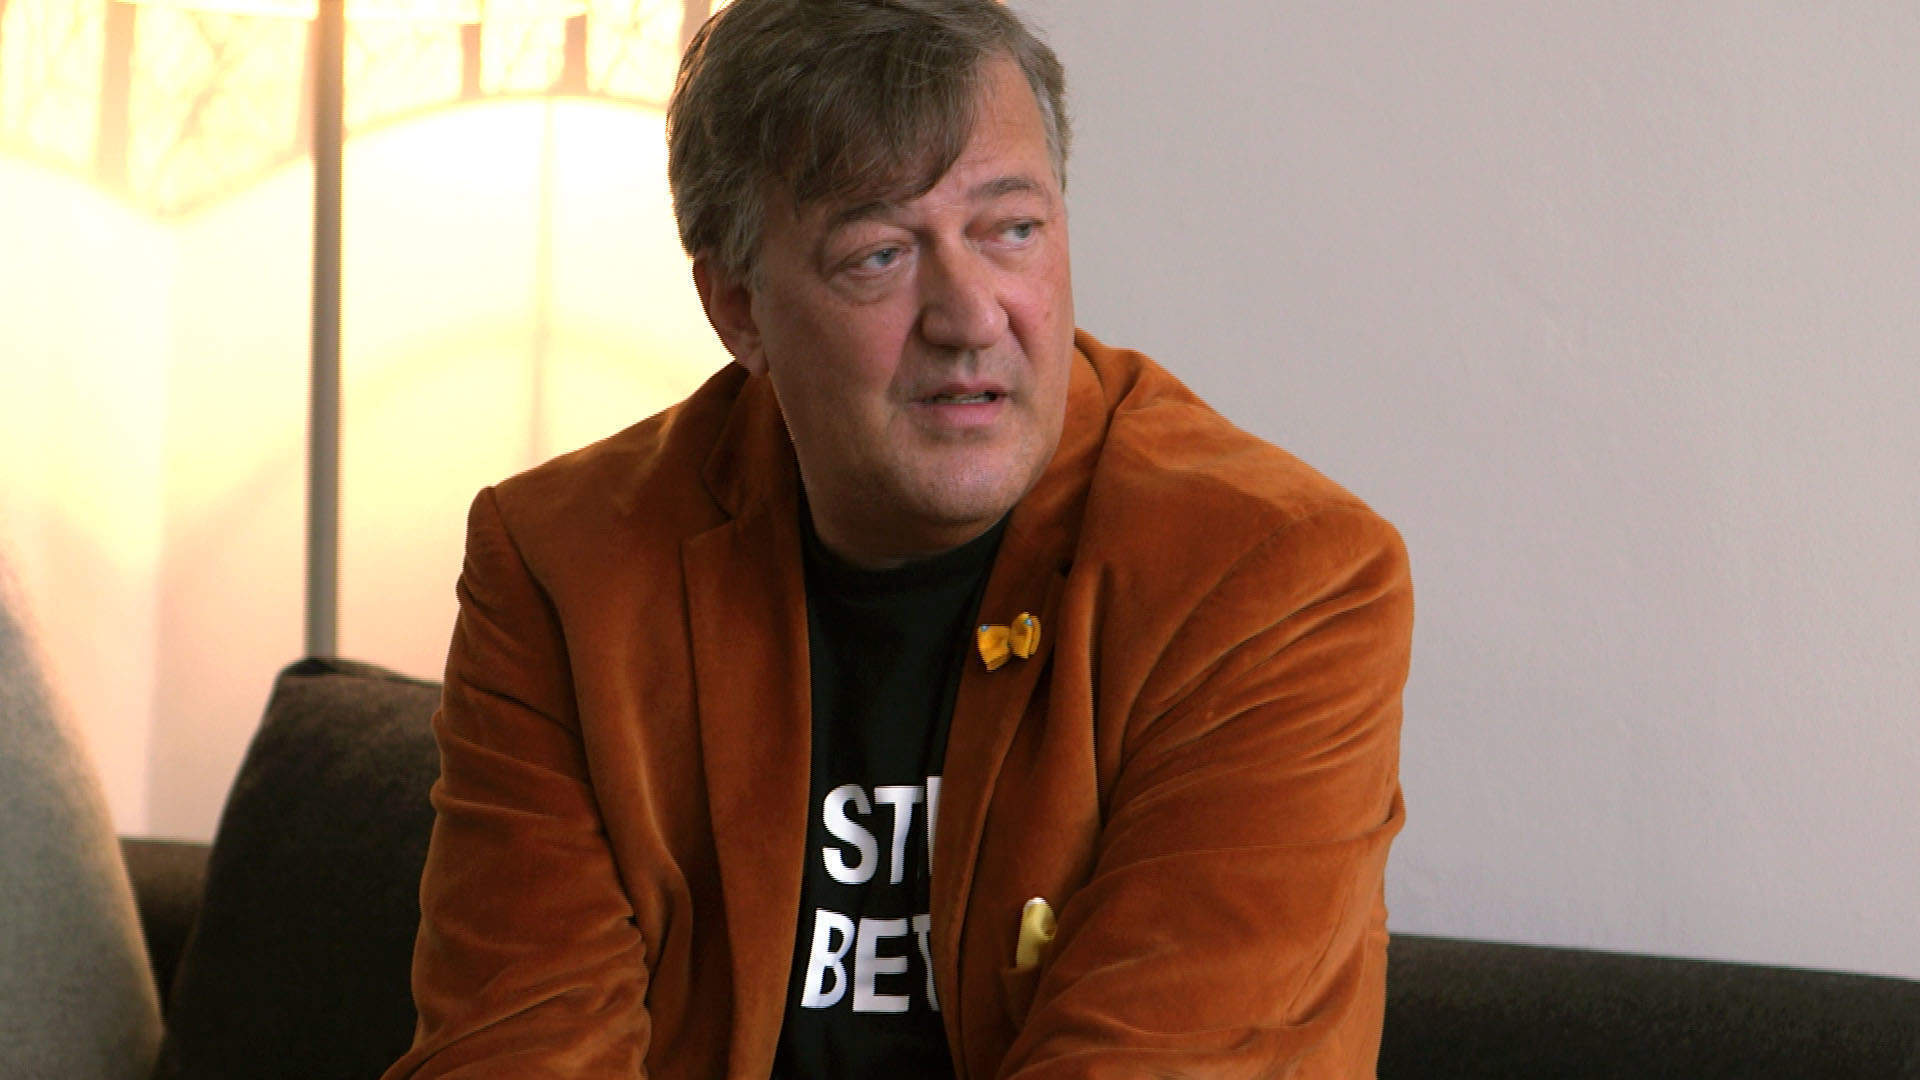 Would you swap places with Stephen Fry? The Not So Secret Life of the Manic Depressive reviewed